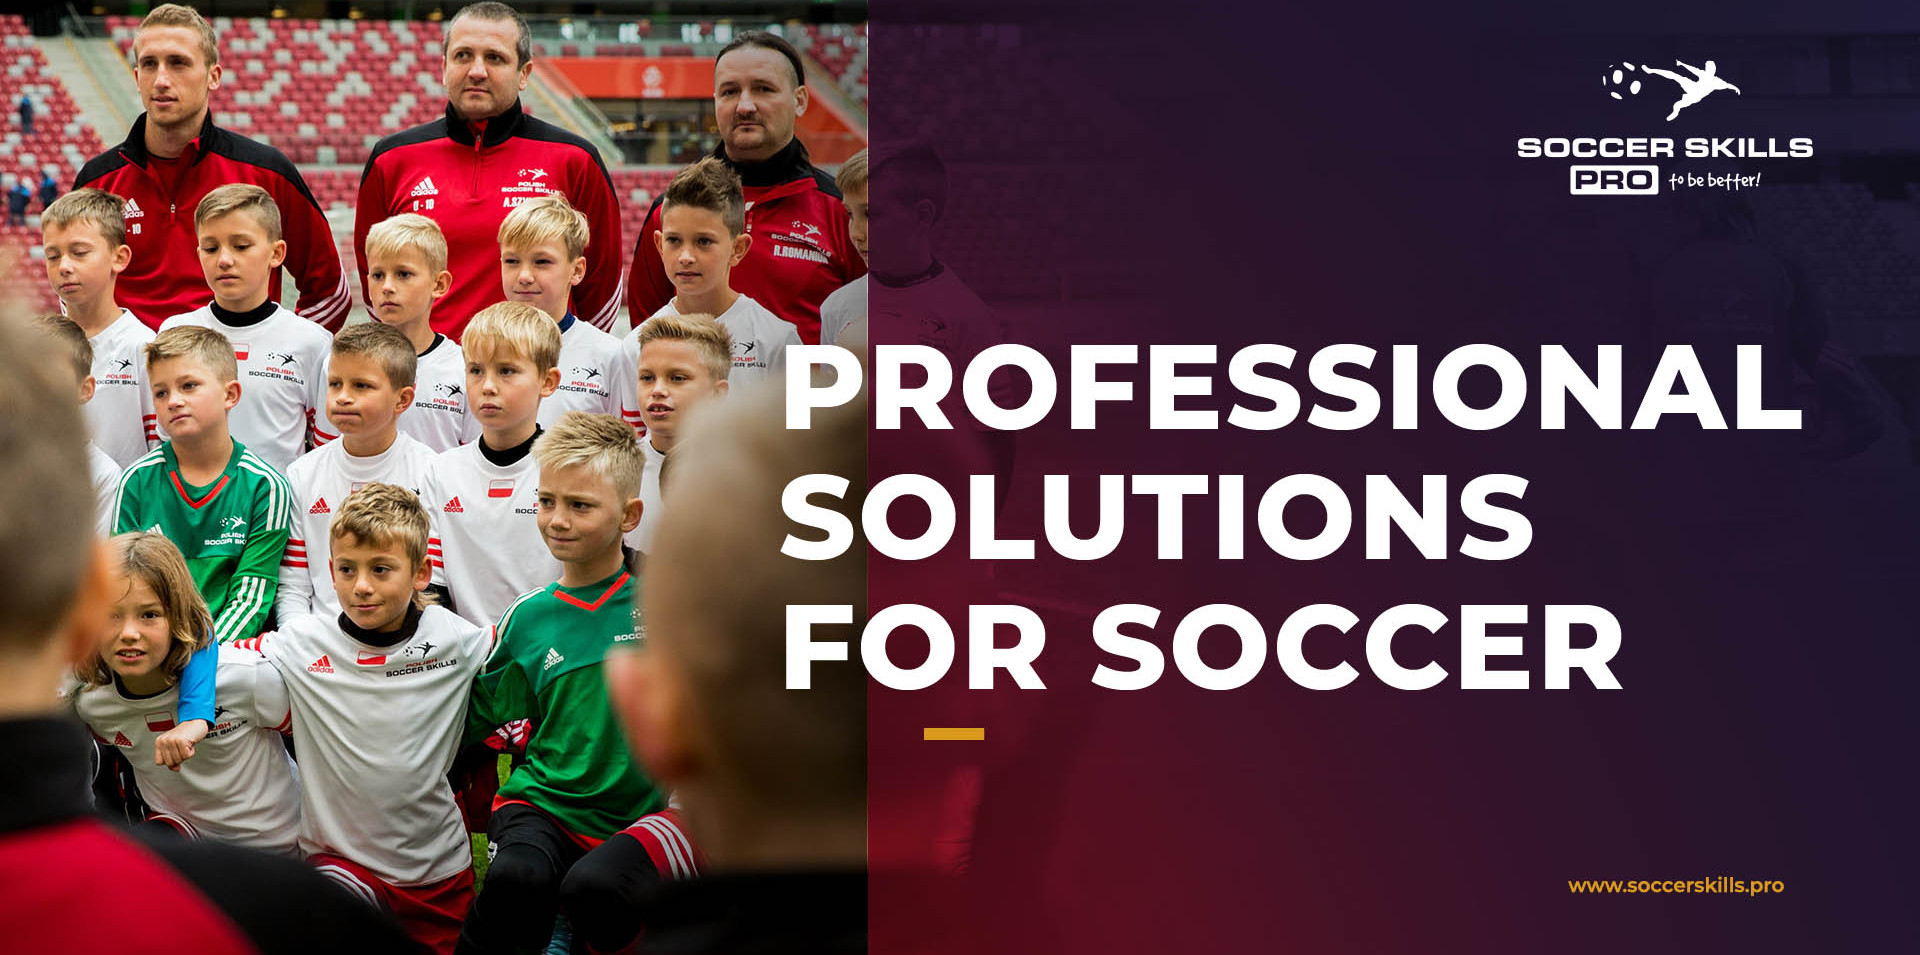 Professional solutions for soccer